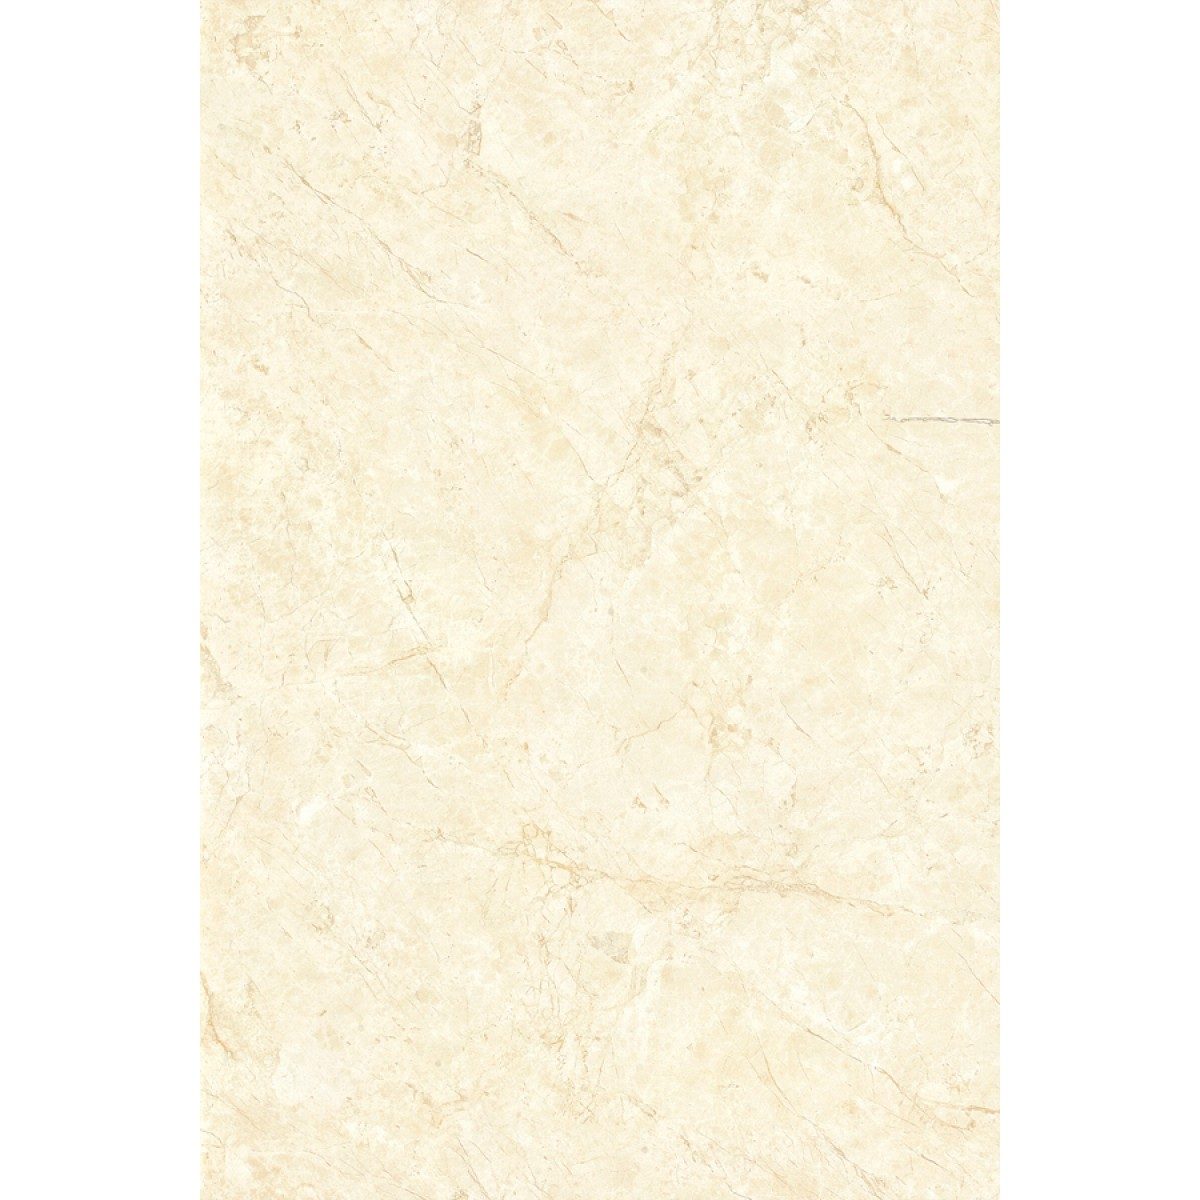 Golden Beige, poliert, 900x600x12 mm